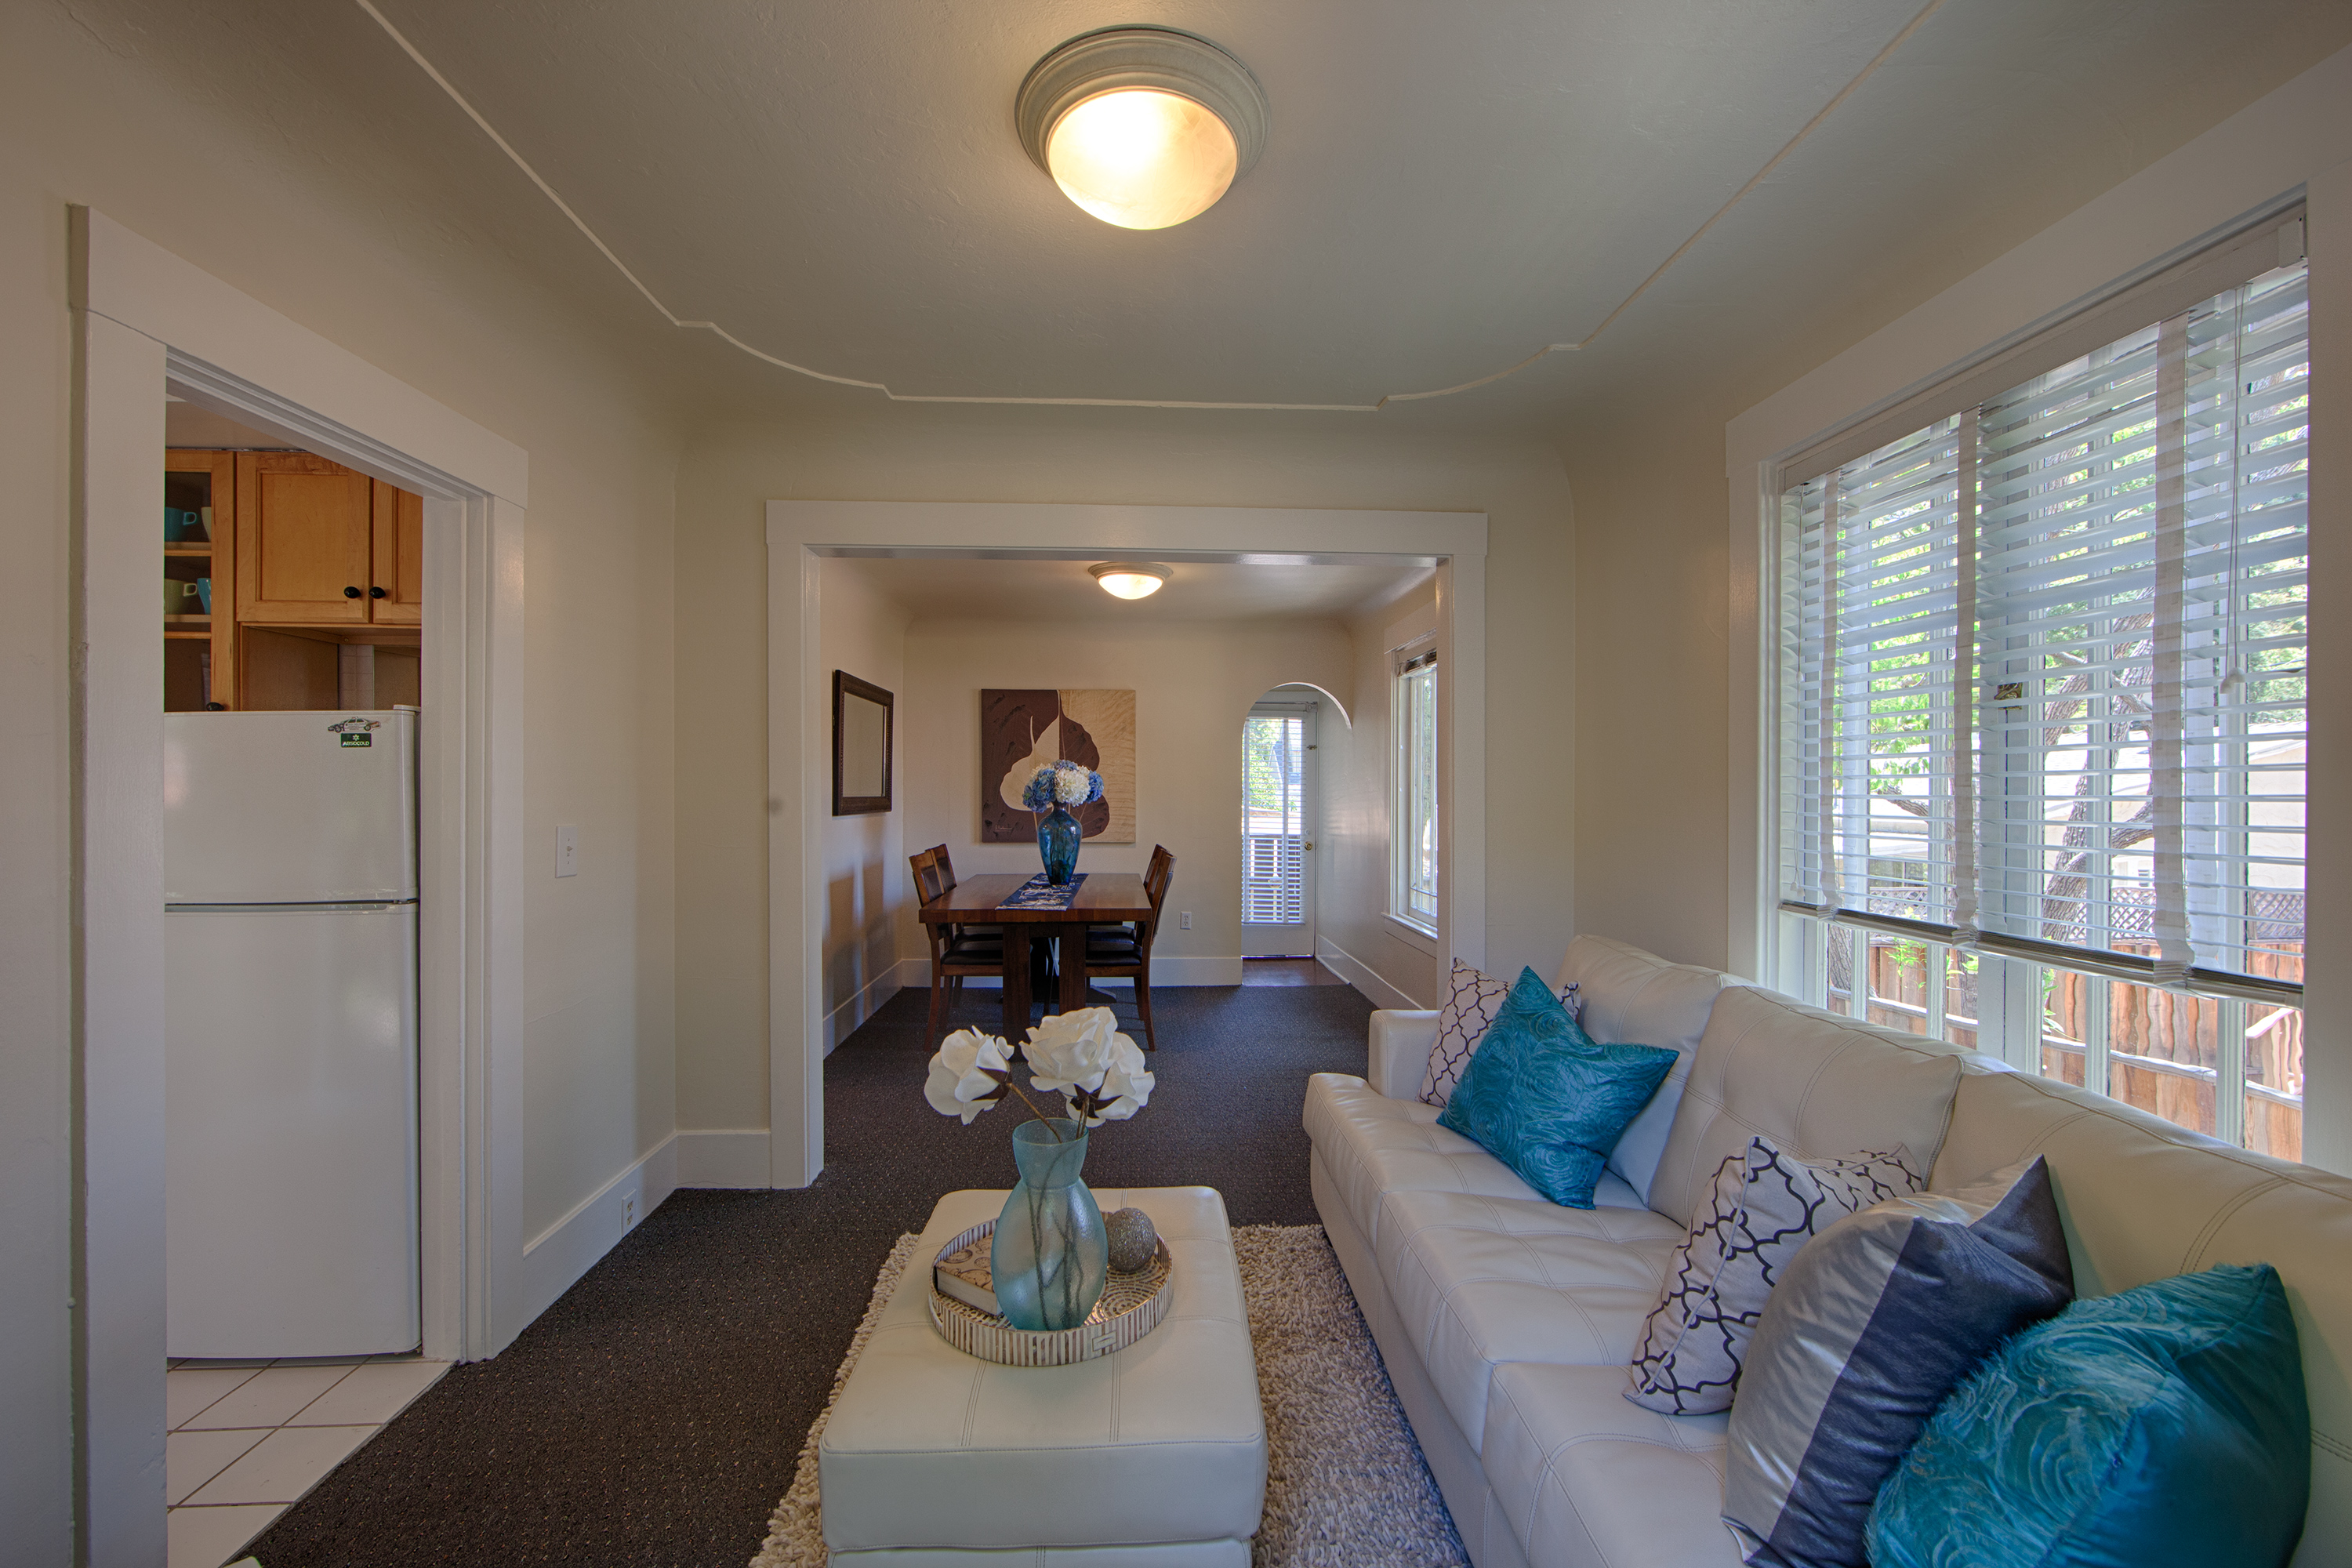 upstairs living room homes for 1321 ave palo alto 94301 real 11022